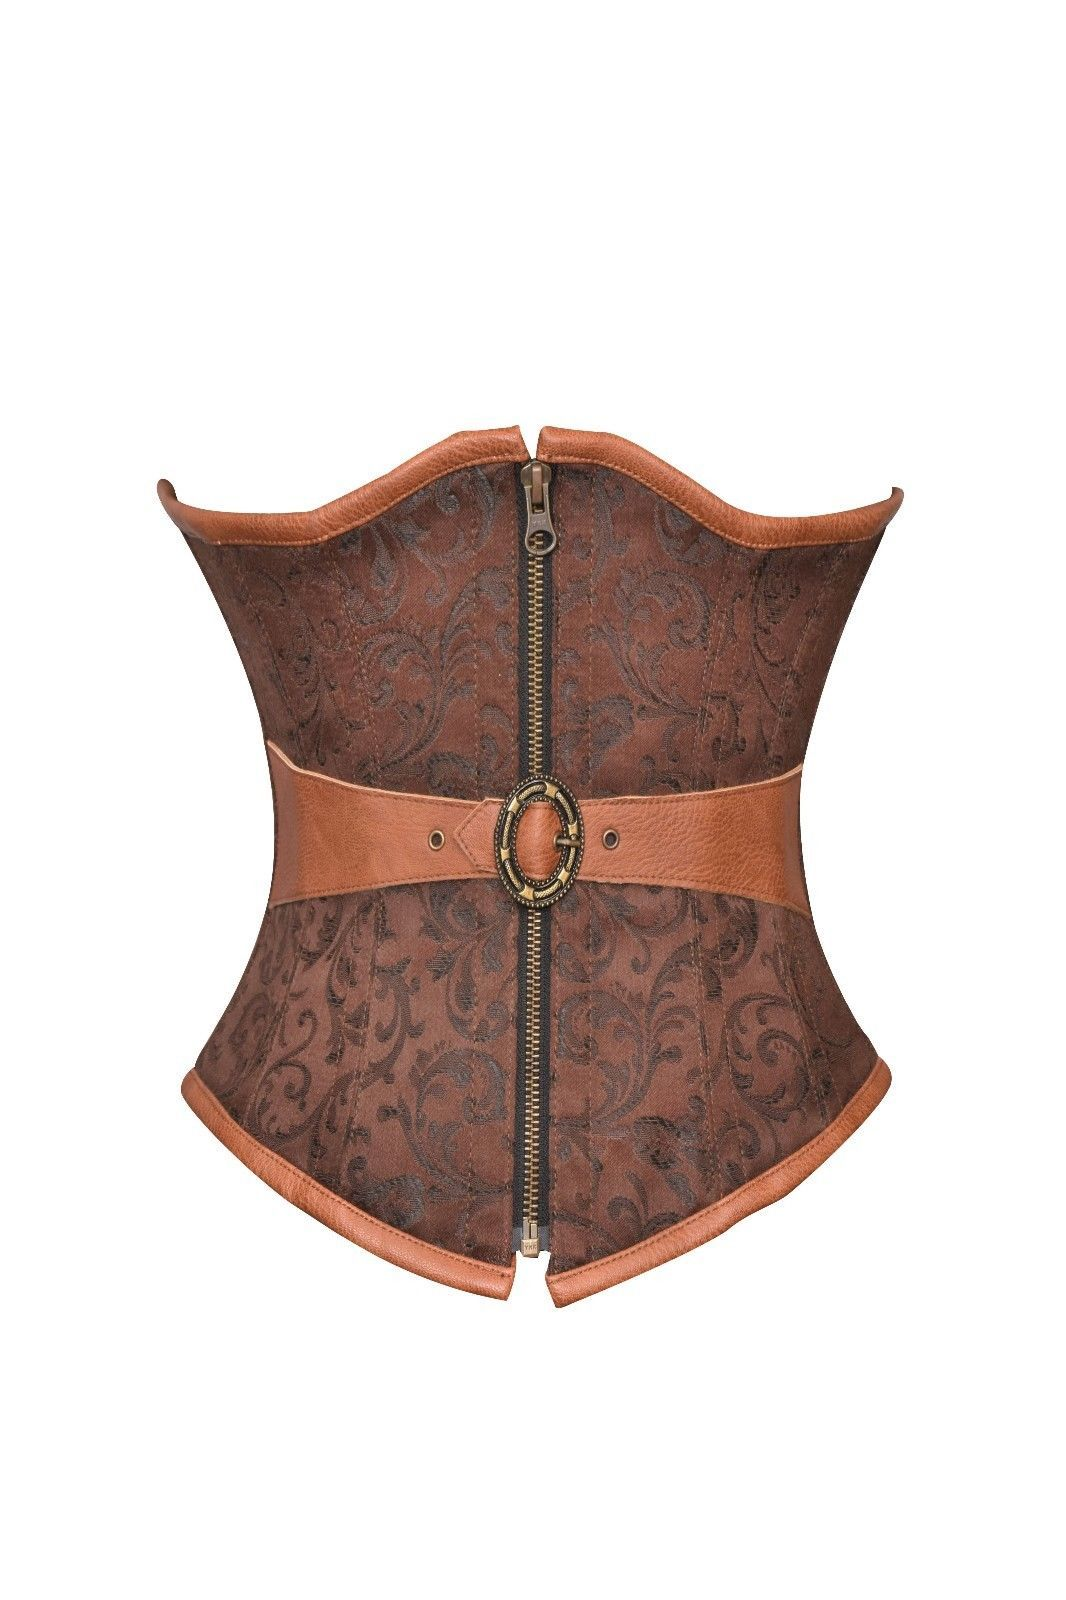 Brown Brocade & Leather Belt Goth Steampunk Waist Training Underbust Corset Top